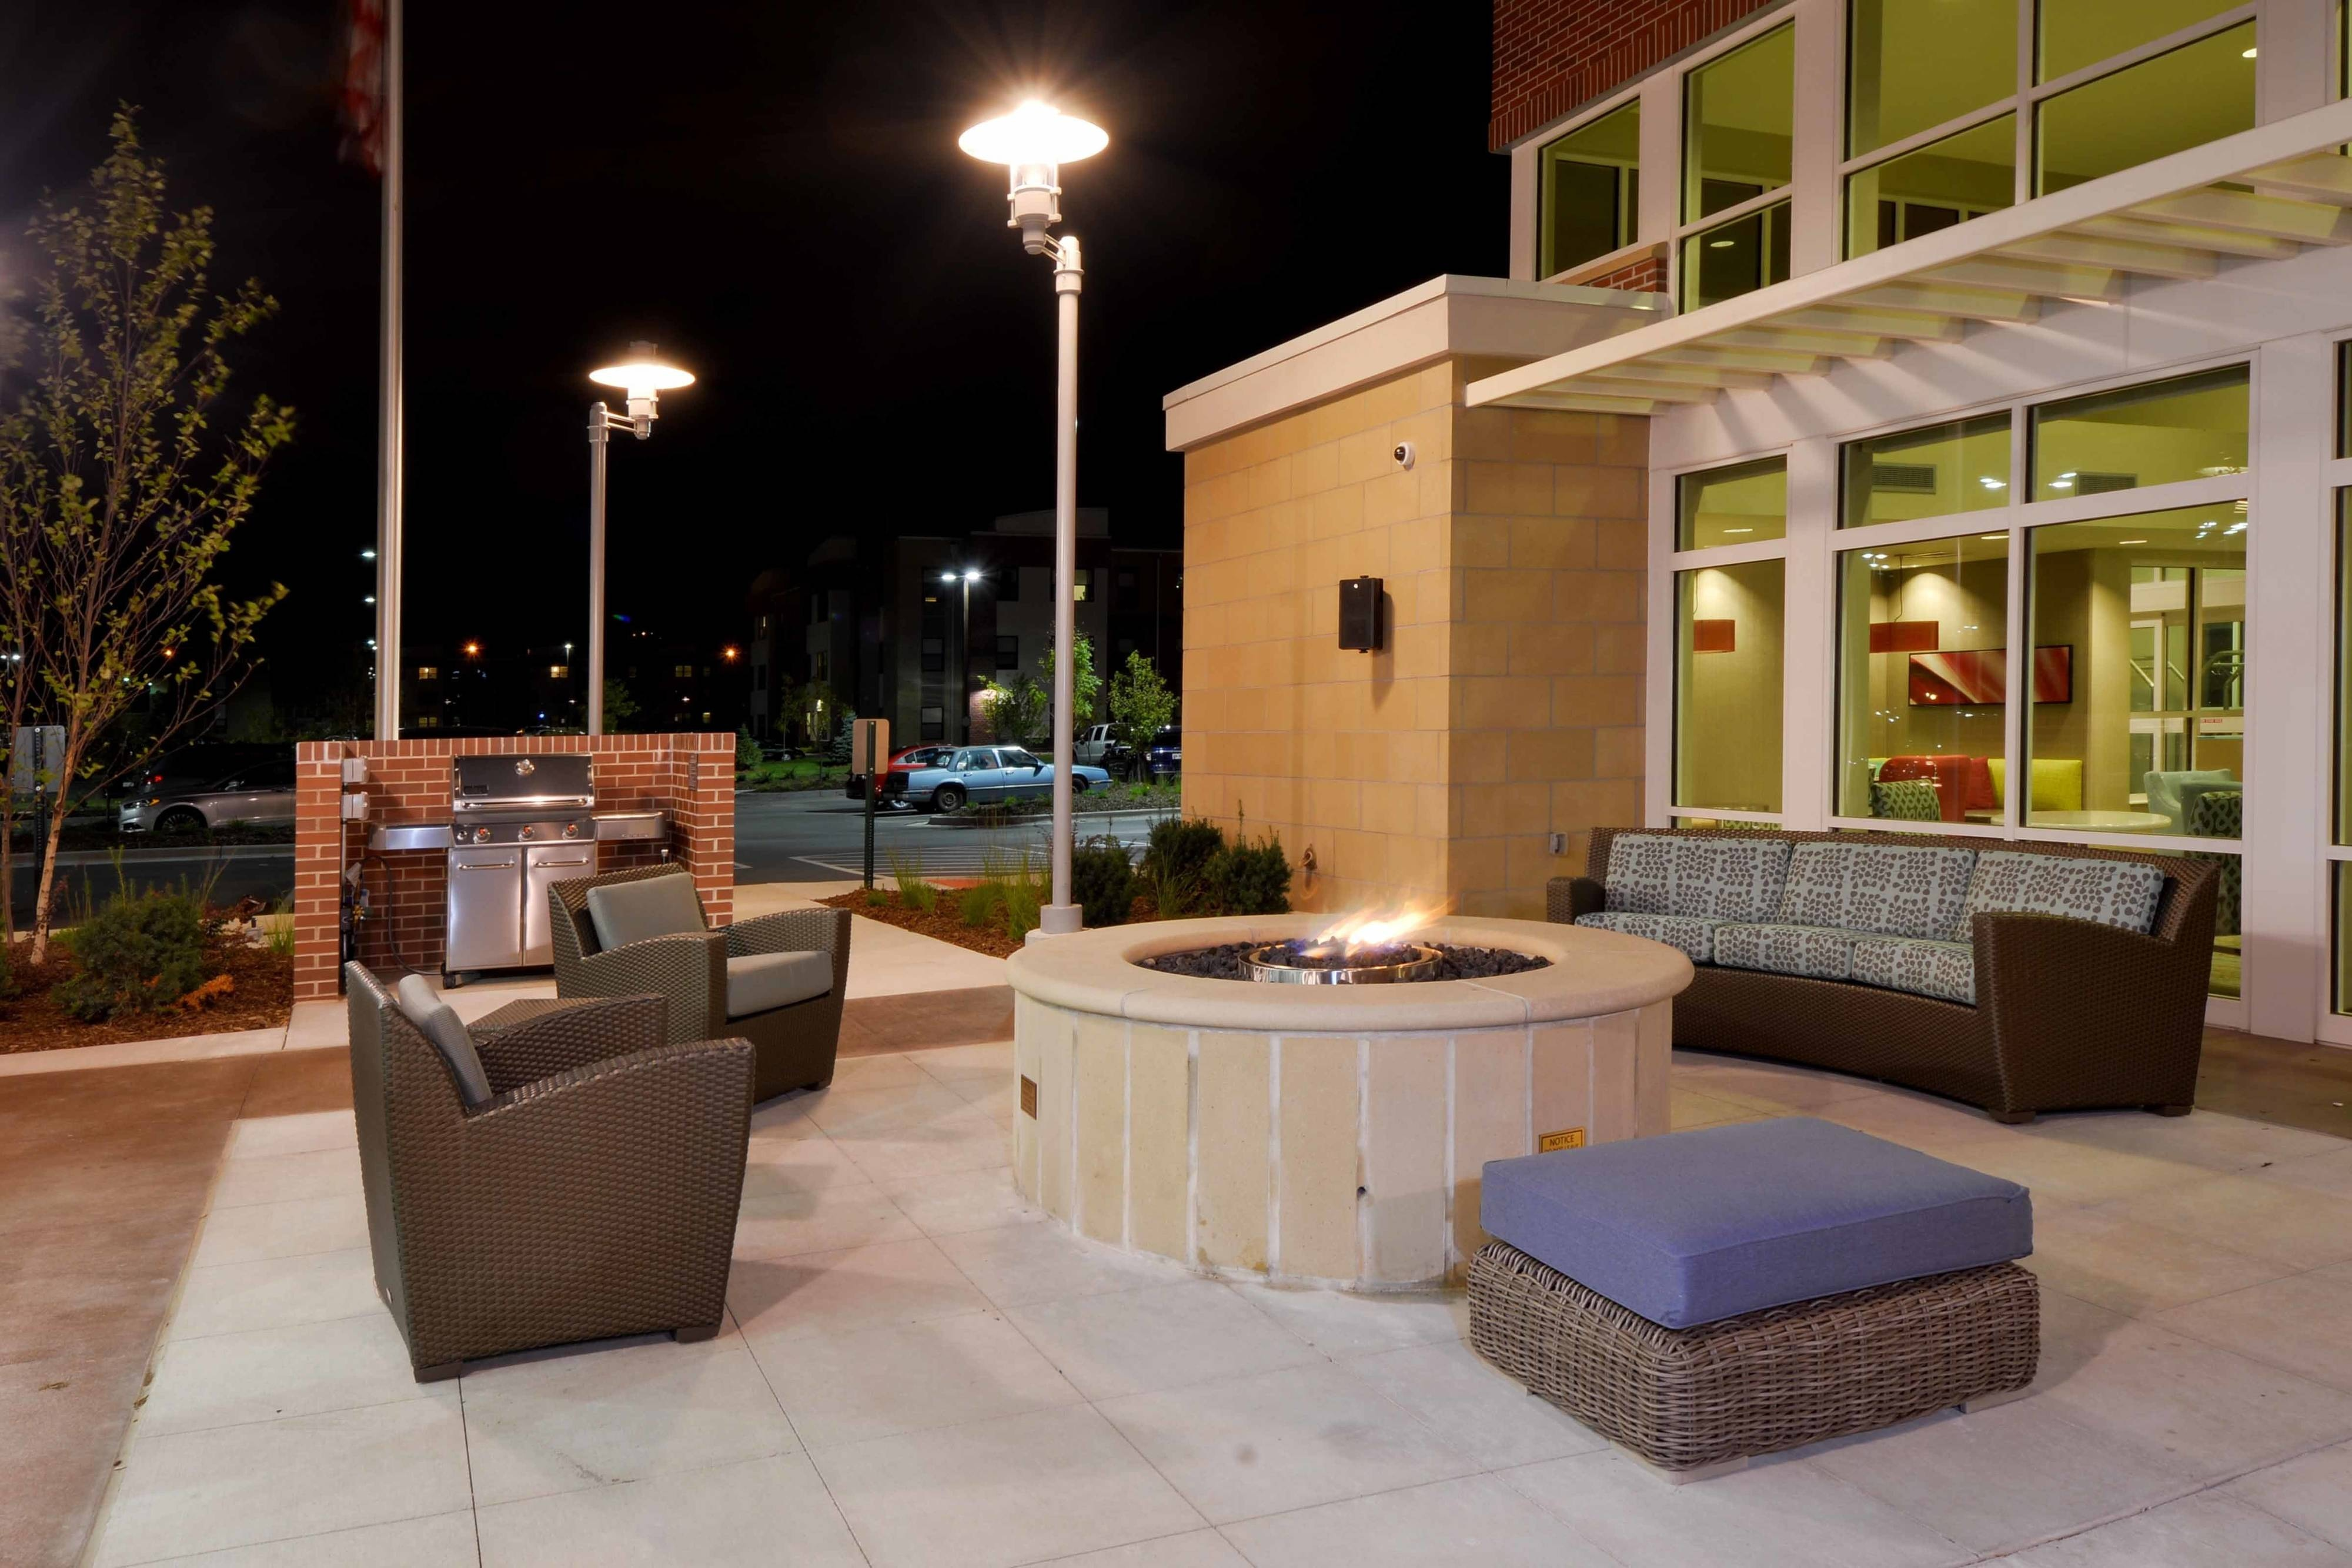 Fire pit & gas grill